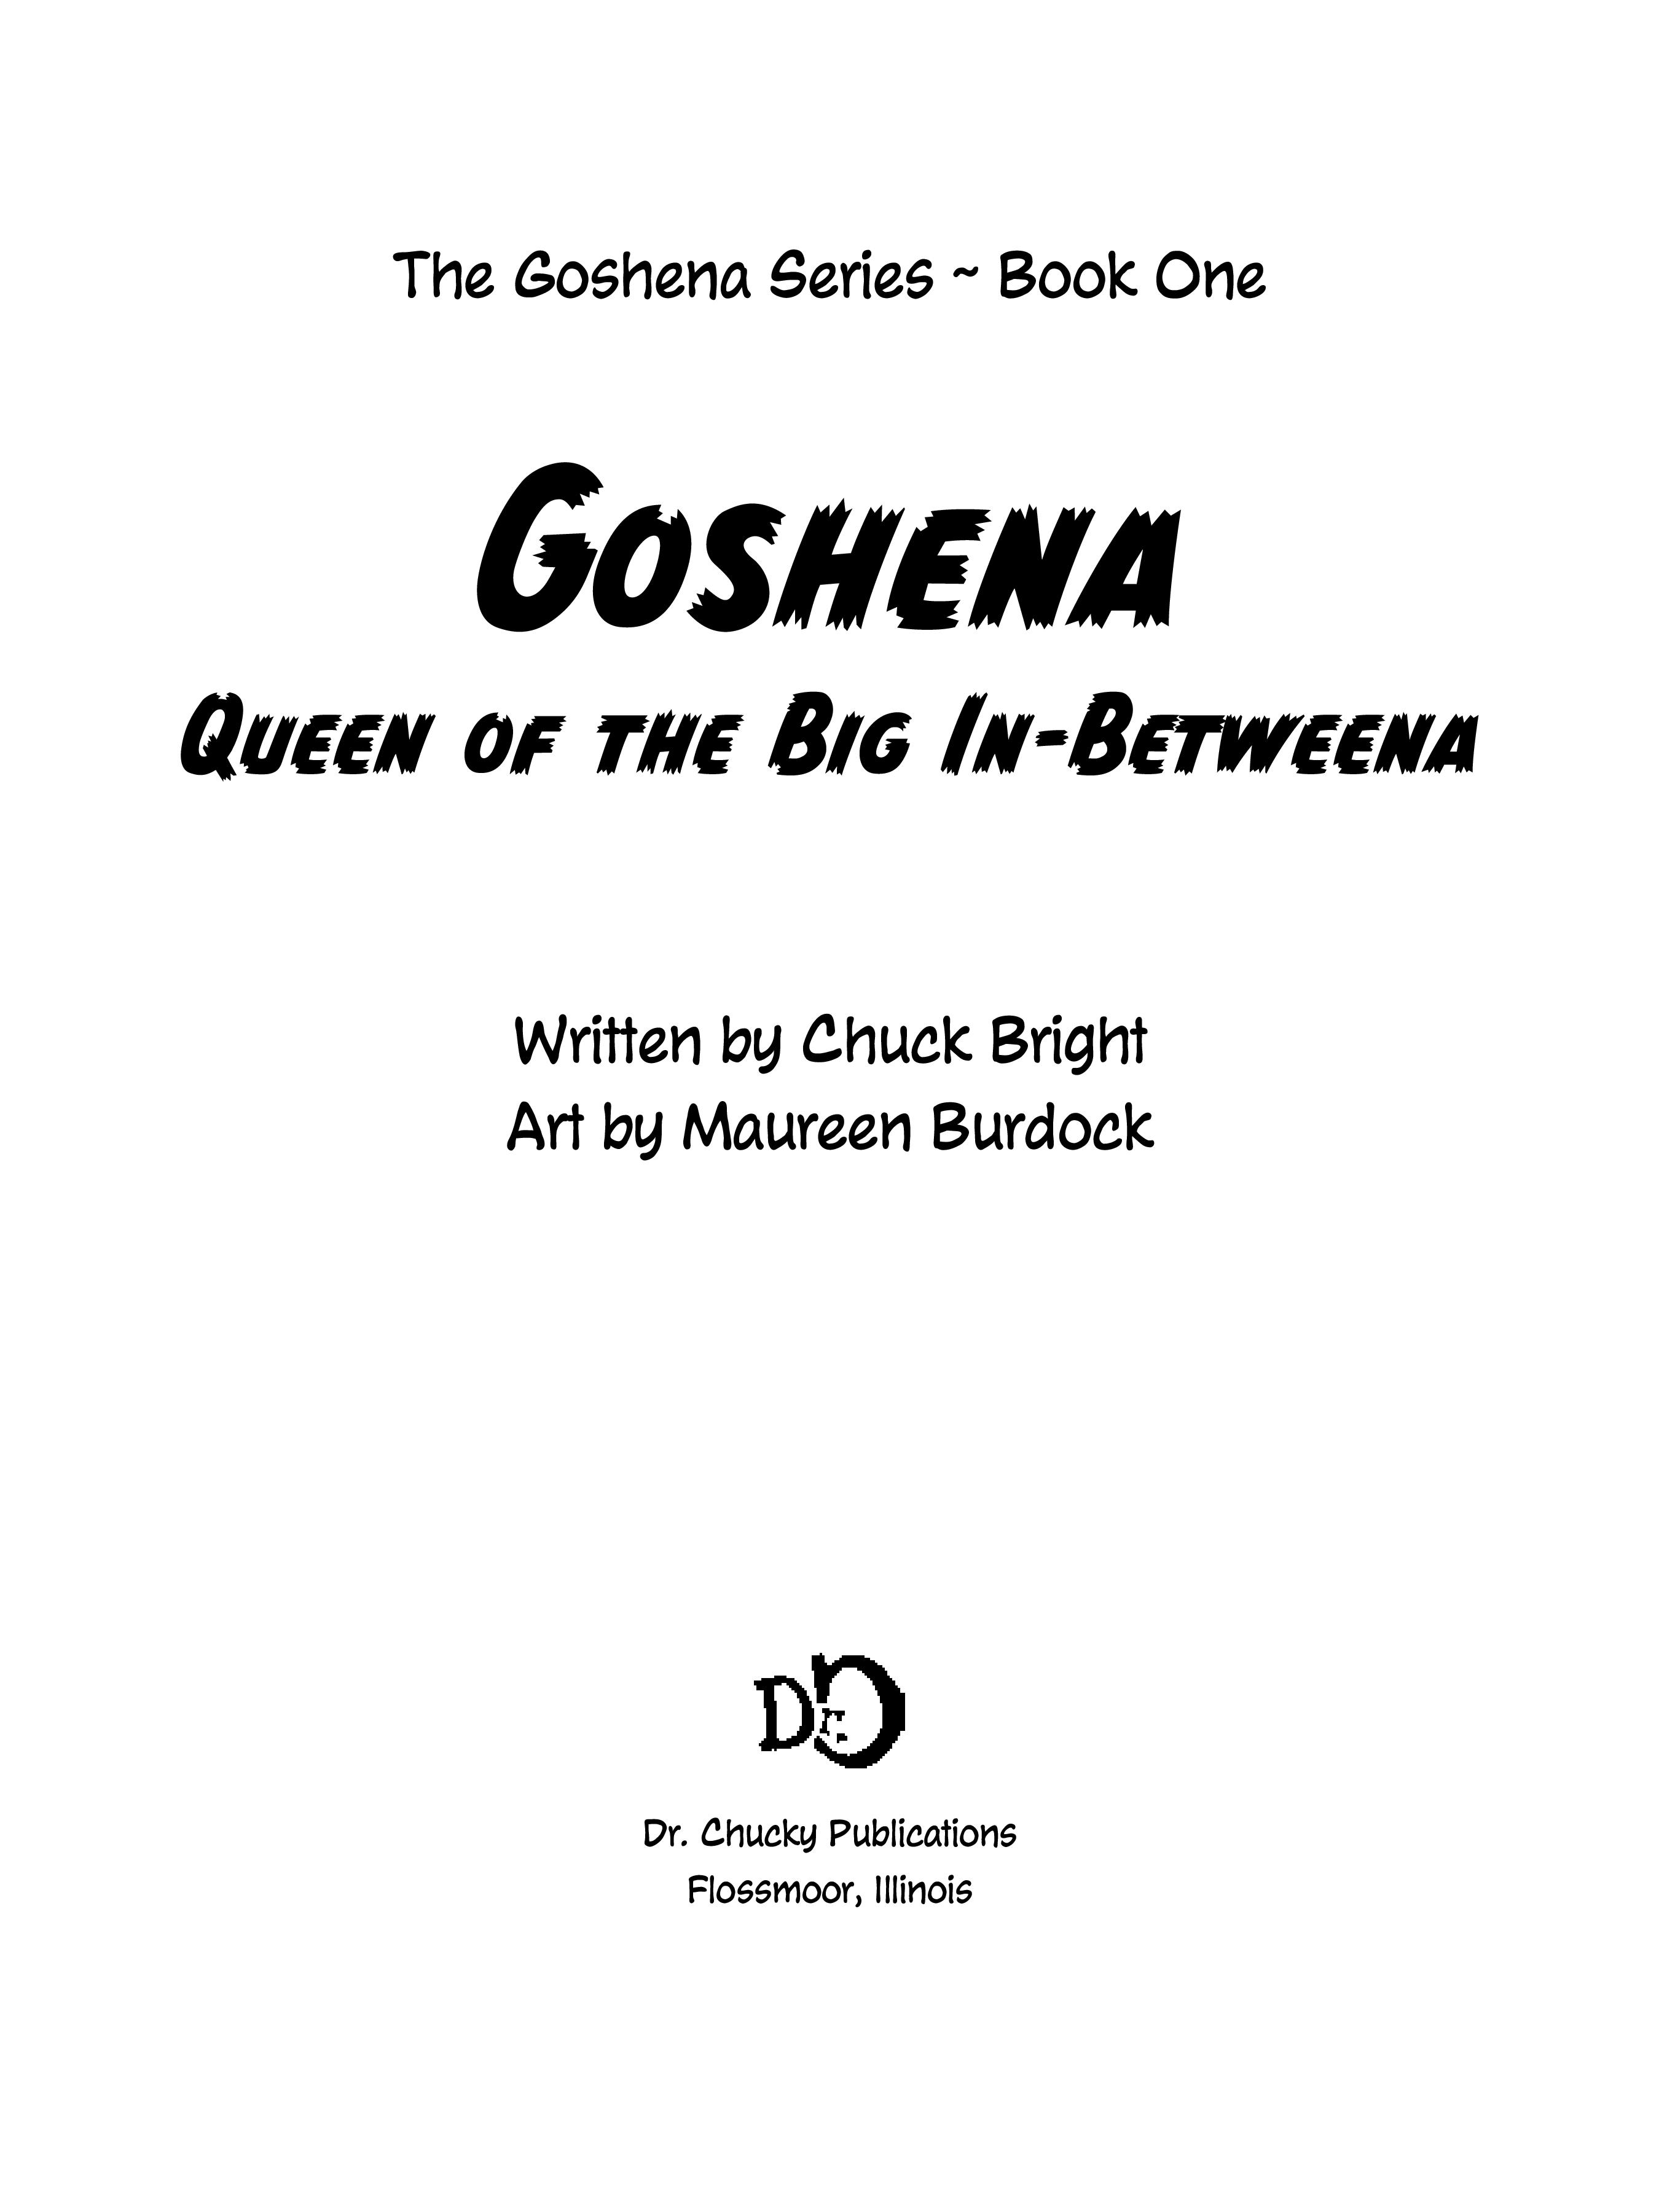 Goshena Preview Page 2 of 19